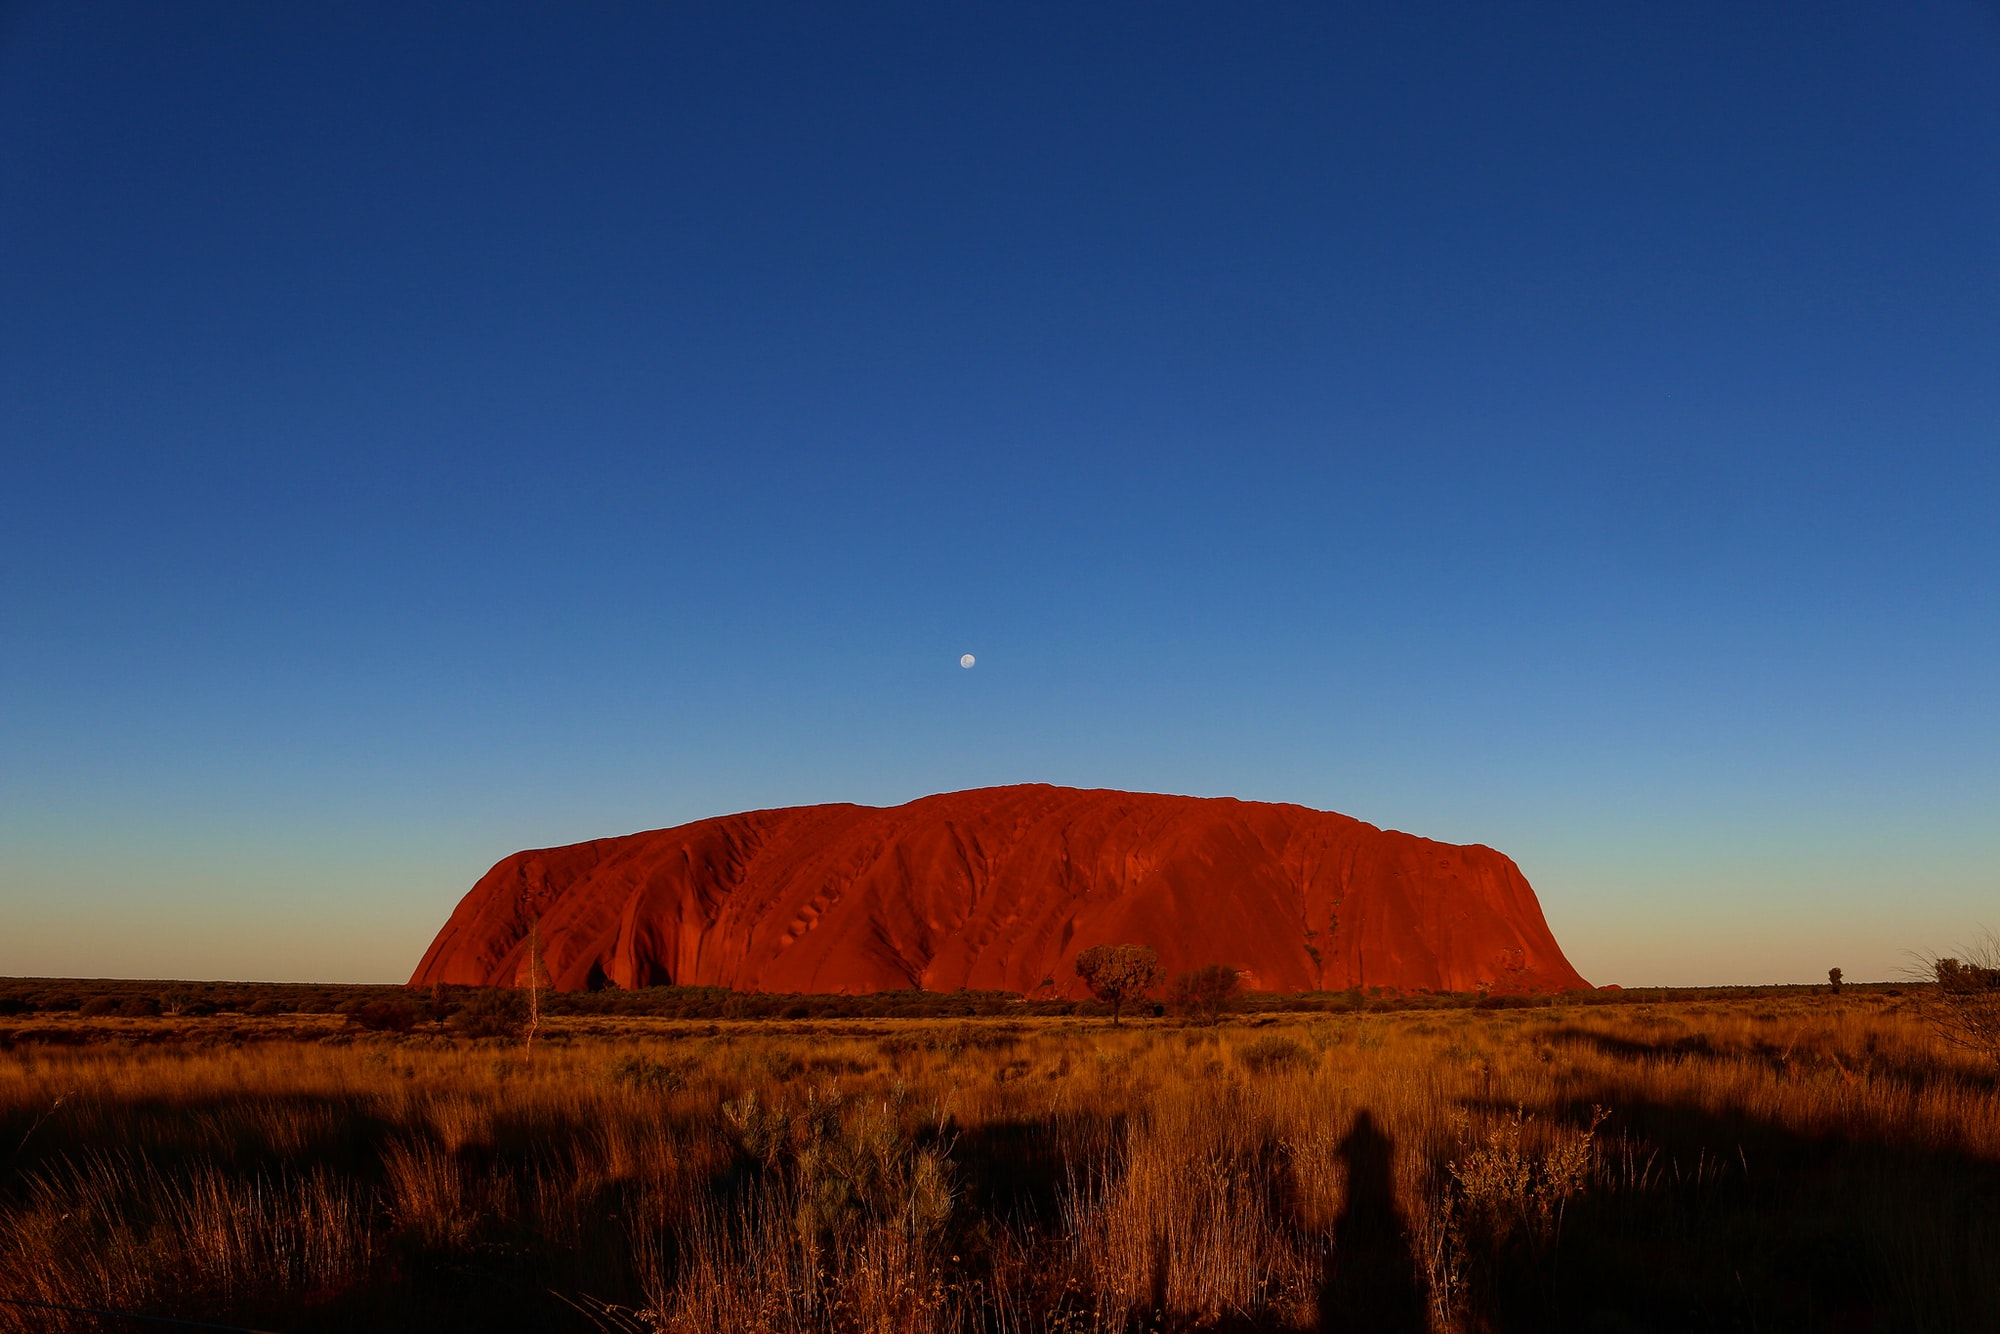 If you ever get to visit Uluru please make sure that you visit it during a sunset and a sunrise. Truely spectacular.